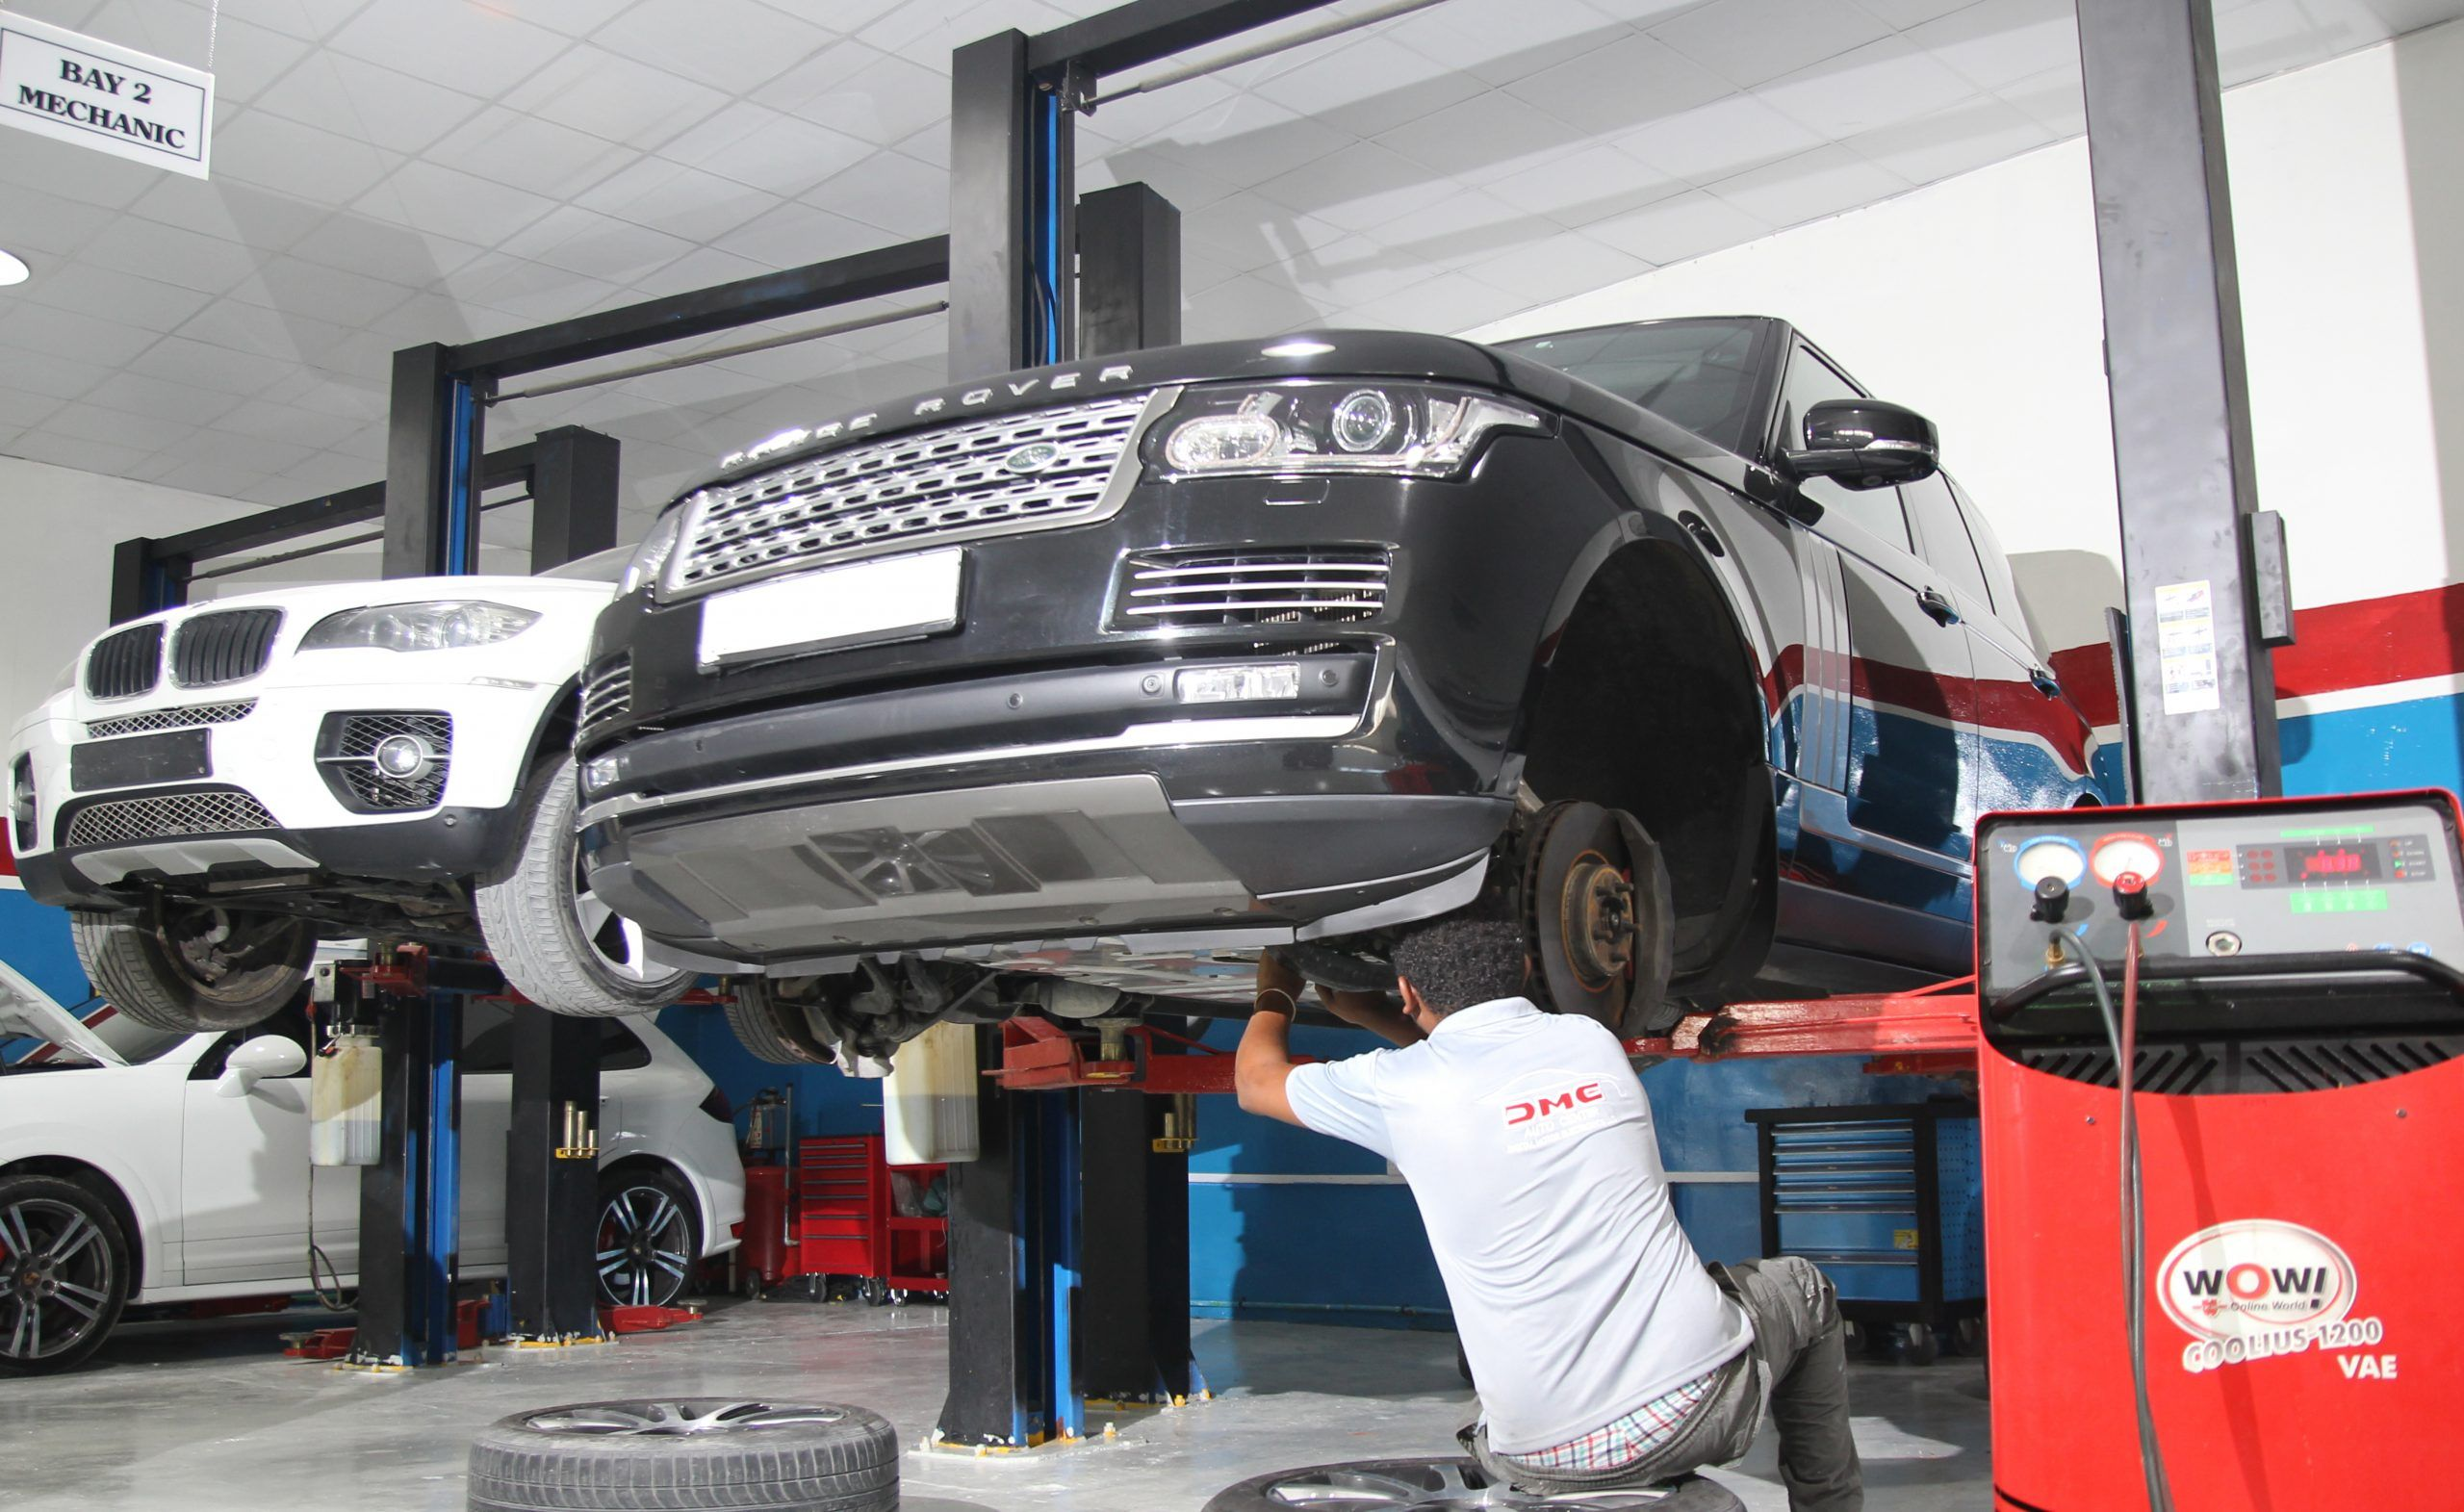 GUIDE TO OUR AUTO SERVICES IN BRAMPTON